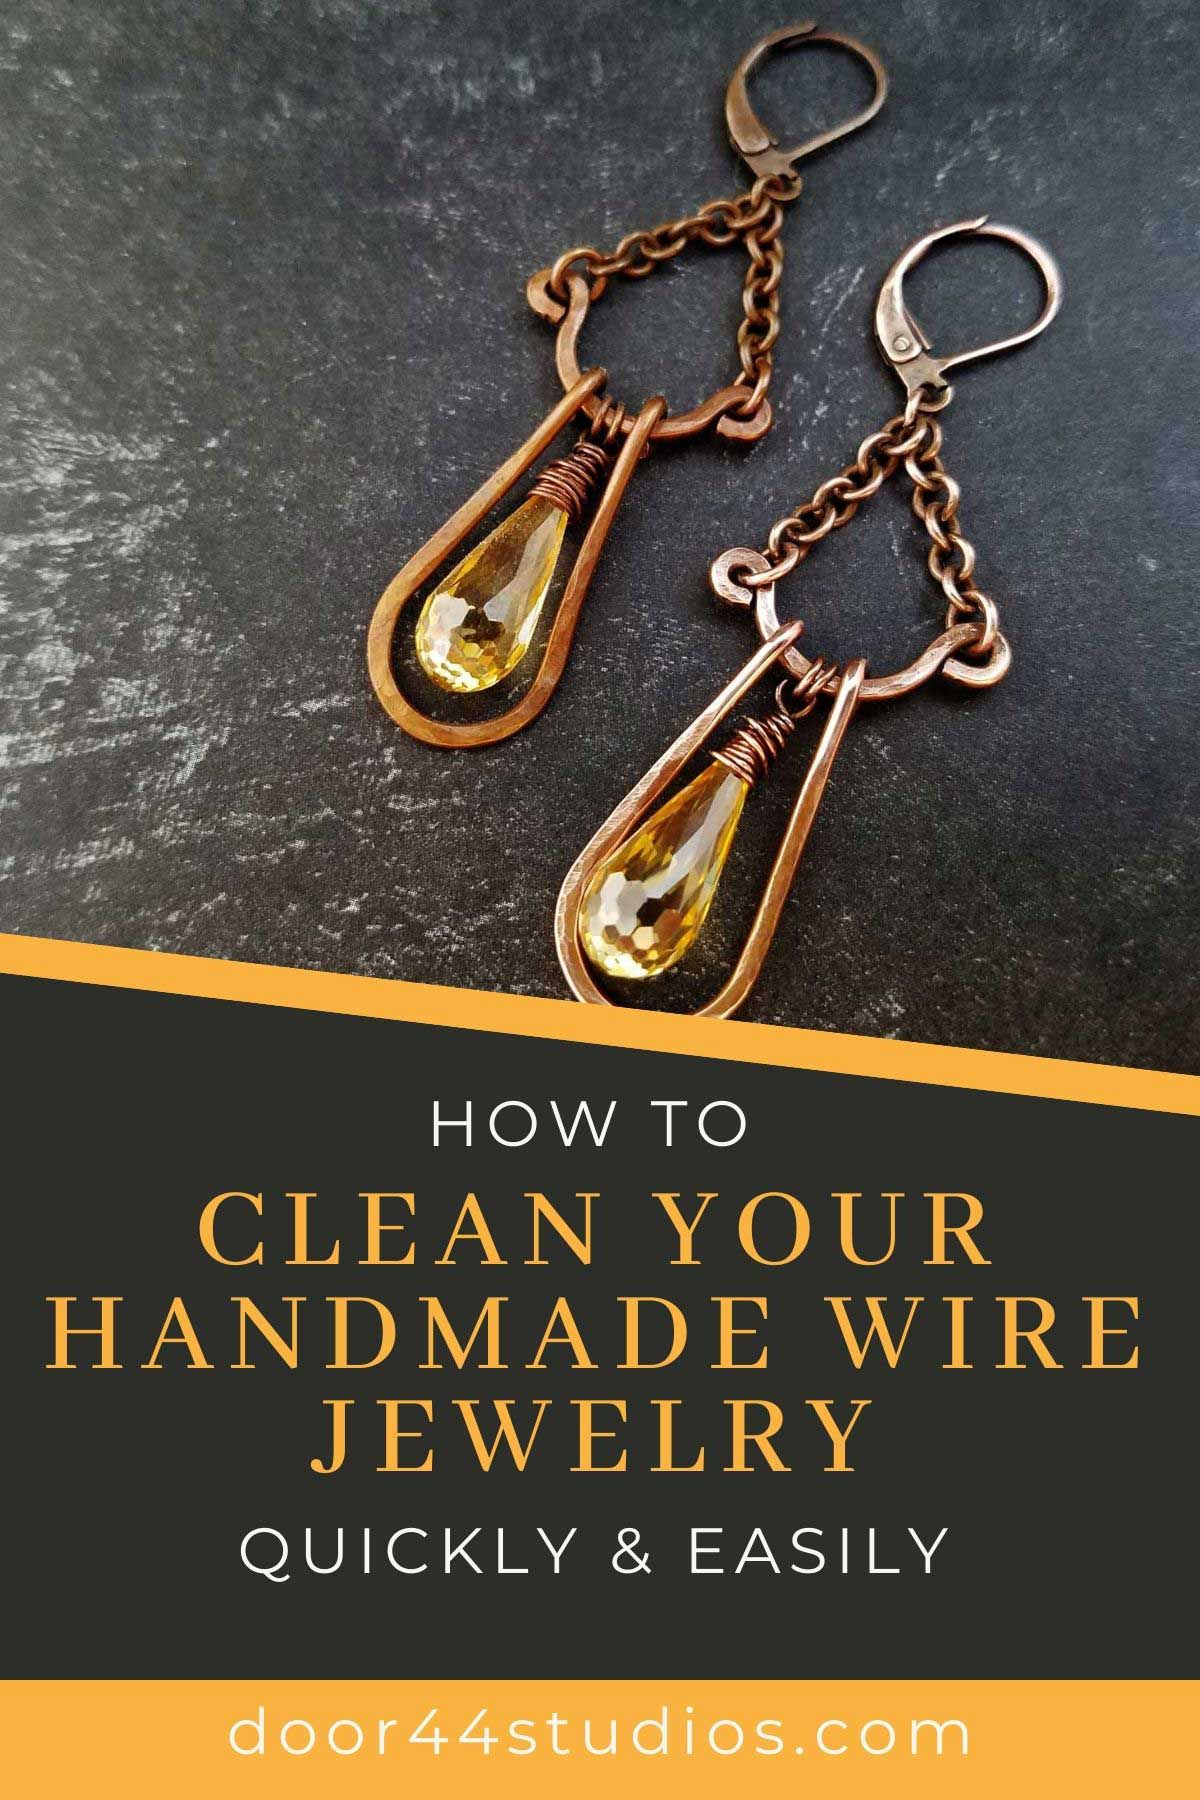 Learn how to clean your handmade wire jewelry with this quick and easy tutorial!